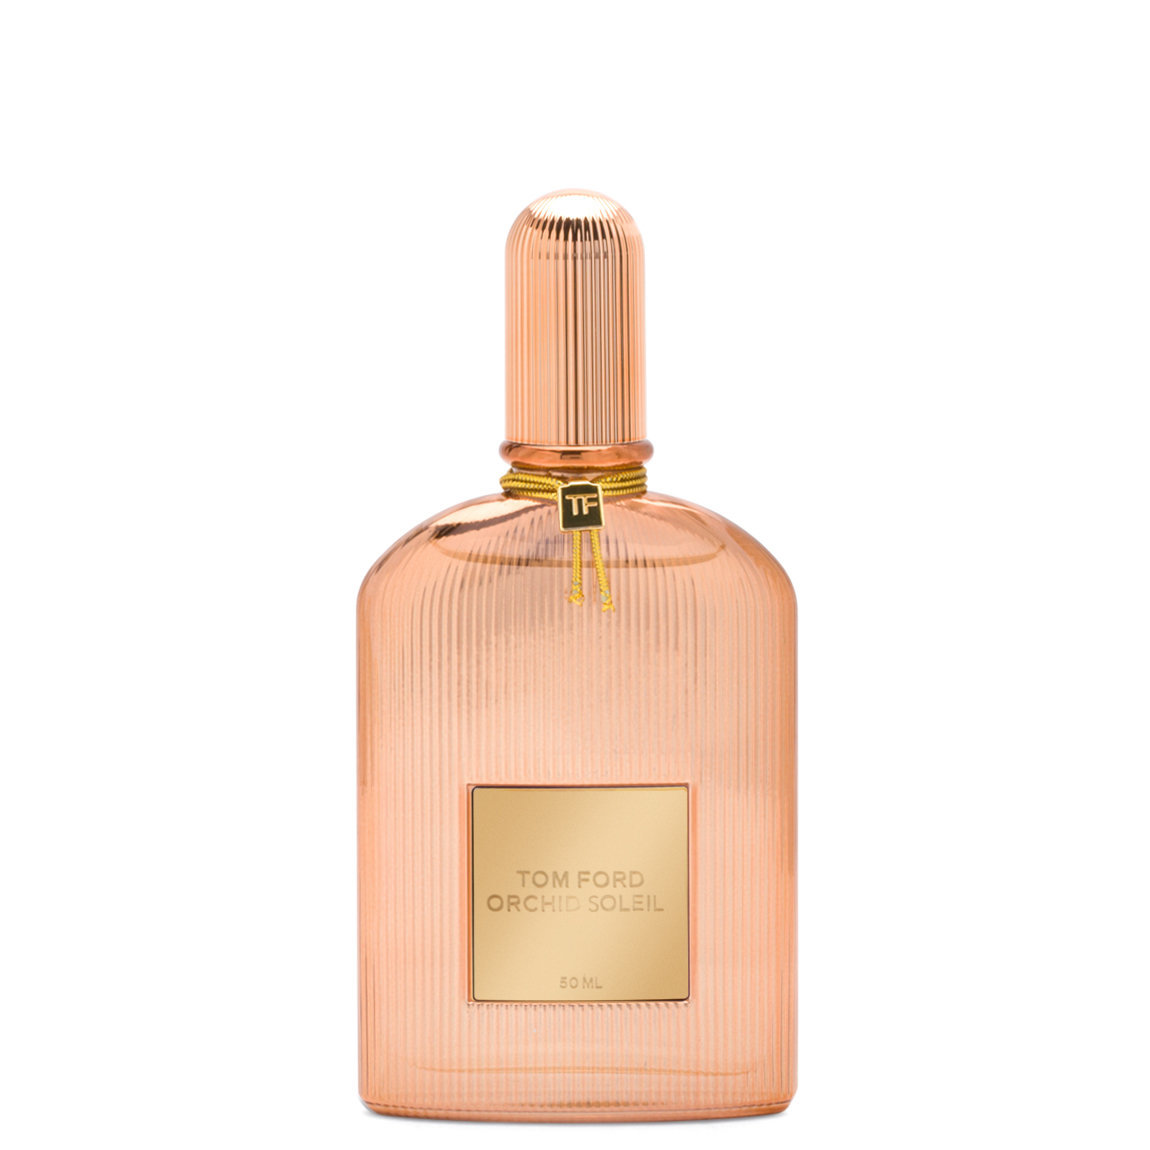 tom ford orchid soleil 50 ml beautylish. Black Bedroom Furniture Sets. Home Design Ideas